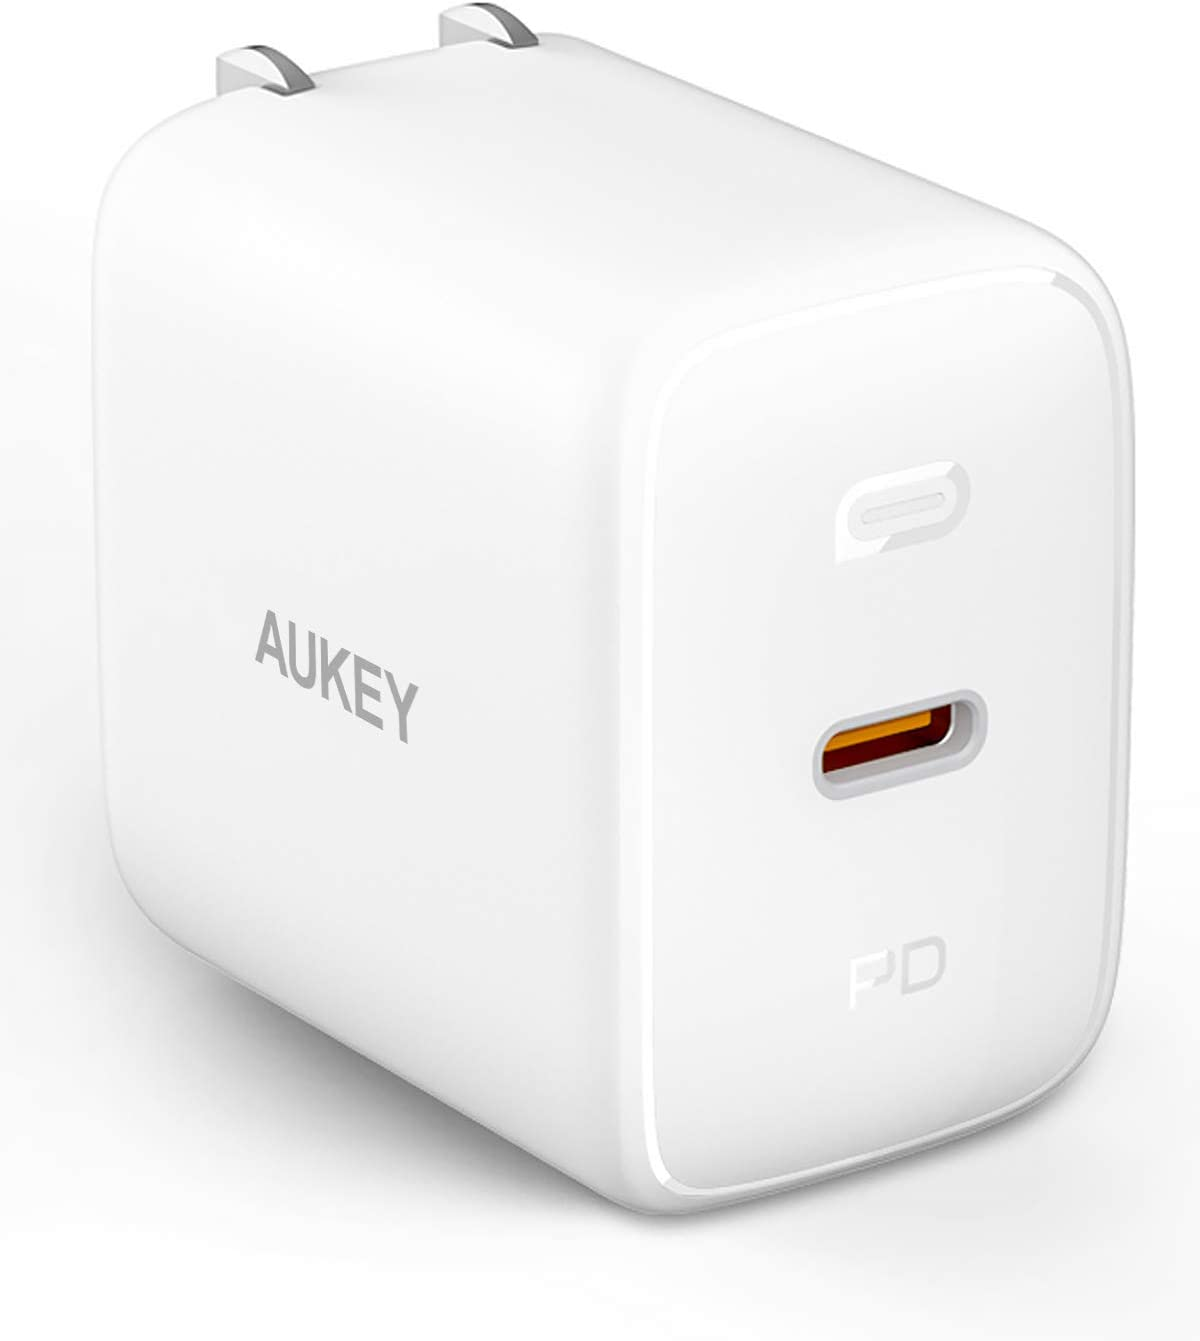 USB C Charger, AUKEY Omnia 61W PD Charger with GaNFast Technology, MacBook Pro Charger USB C Wall Charger Power Delivery Laptop Charger for MacBook Pro/air, iPhone 11 Pro, Dell XPS 13